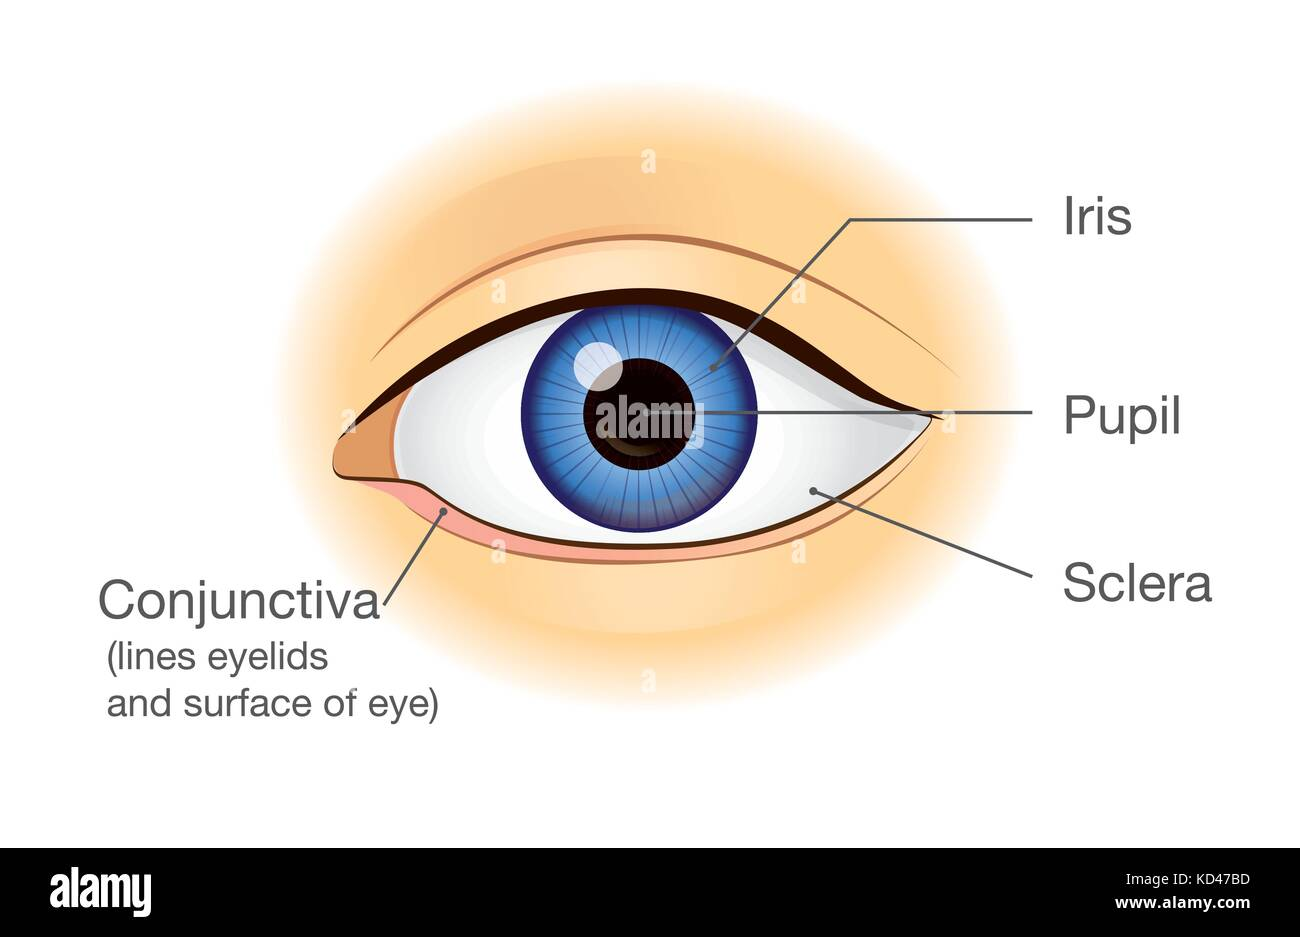 Human Eye Anatomy Stock Photos & Human Eye Anatomy Stock Images - Alamy